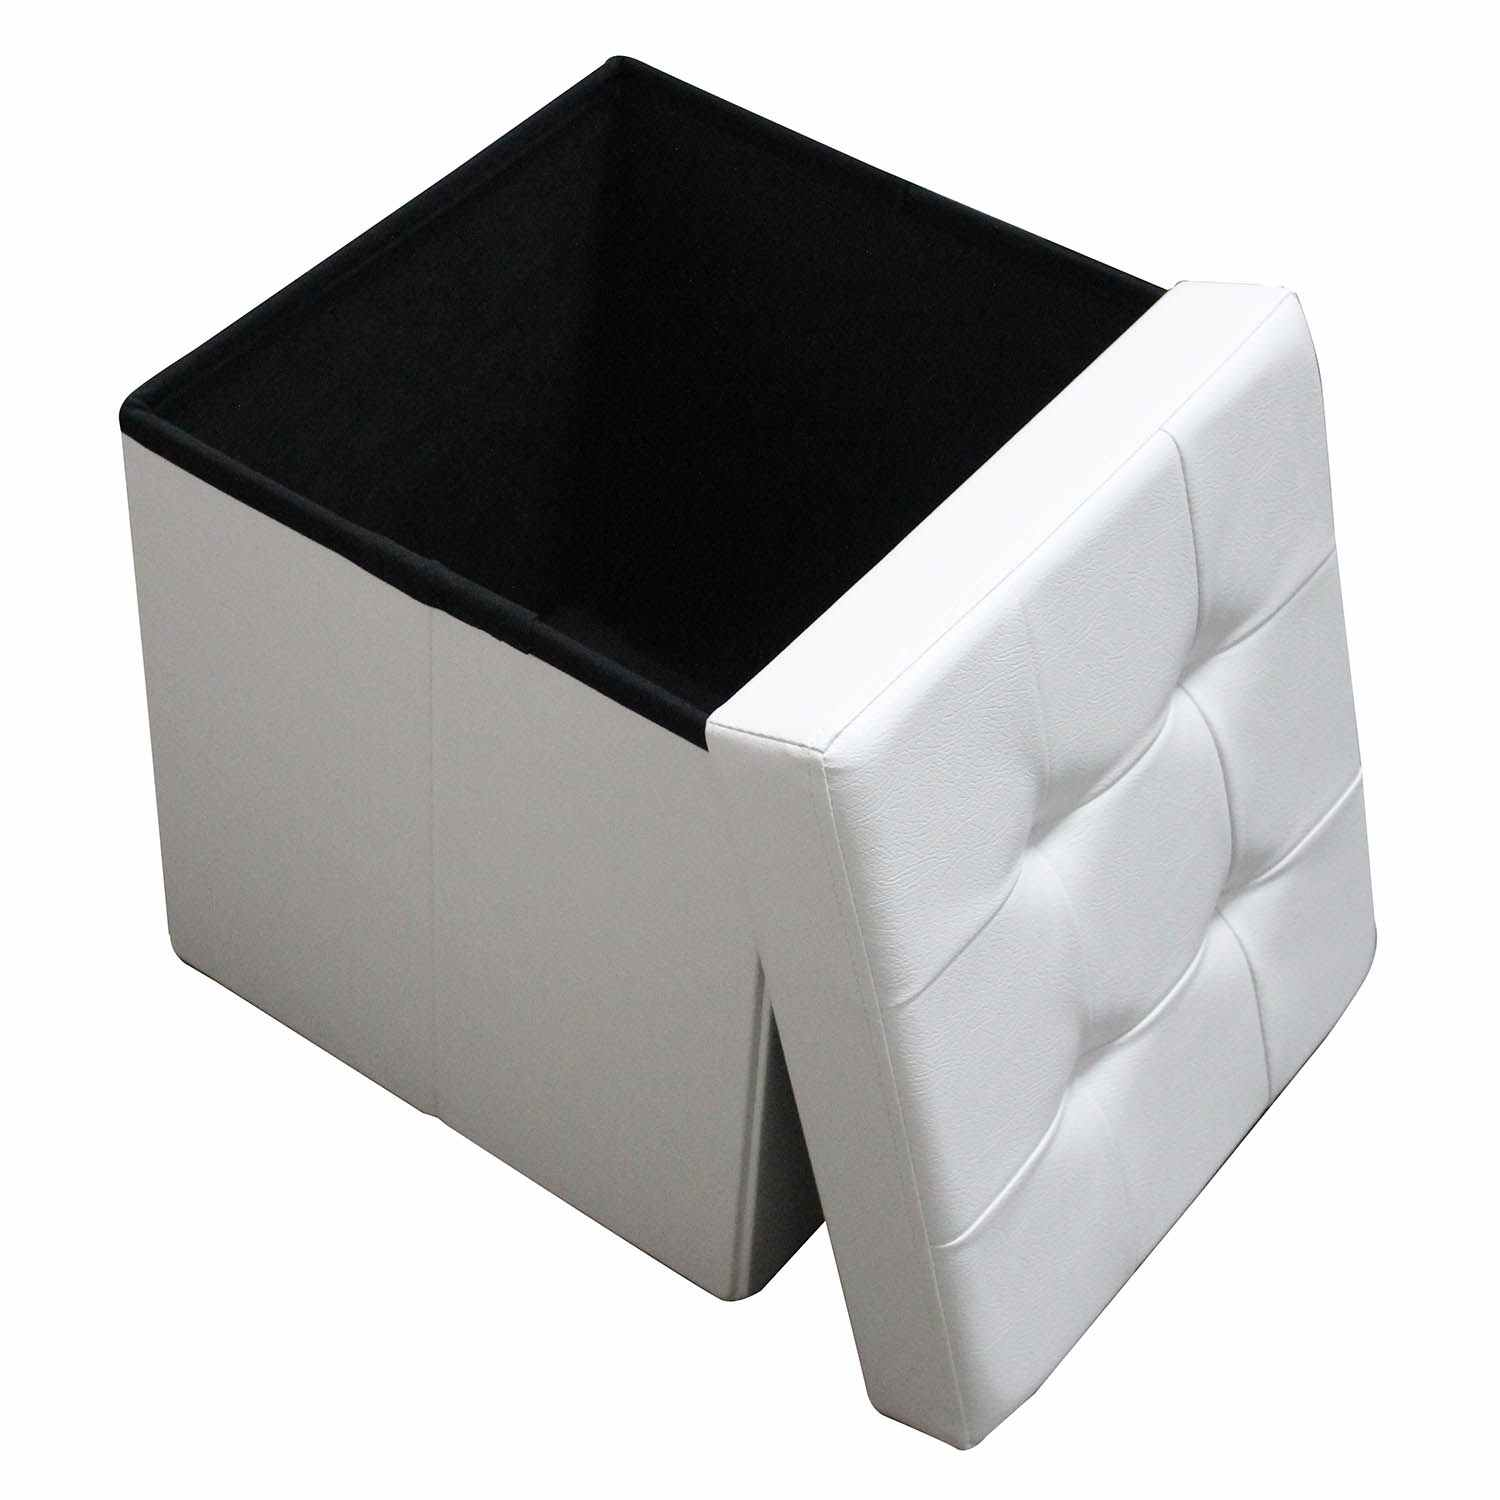 deco in paris 8 pouf coffre carre pliable blanc pouf carre pliable blanc. Black Bedroom Furniture Sets. Home Design Ideas